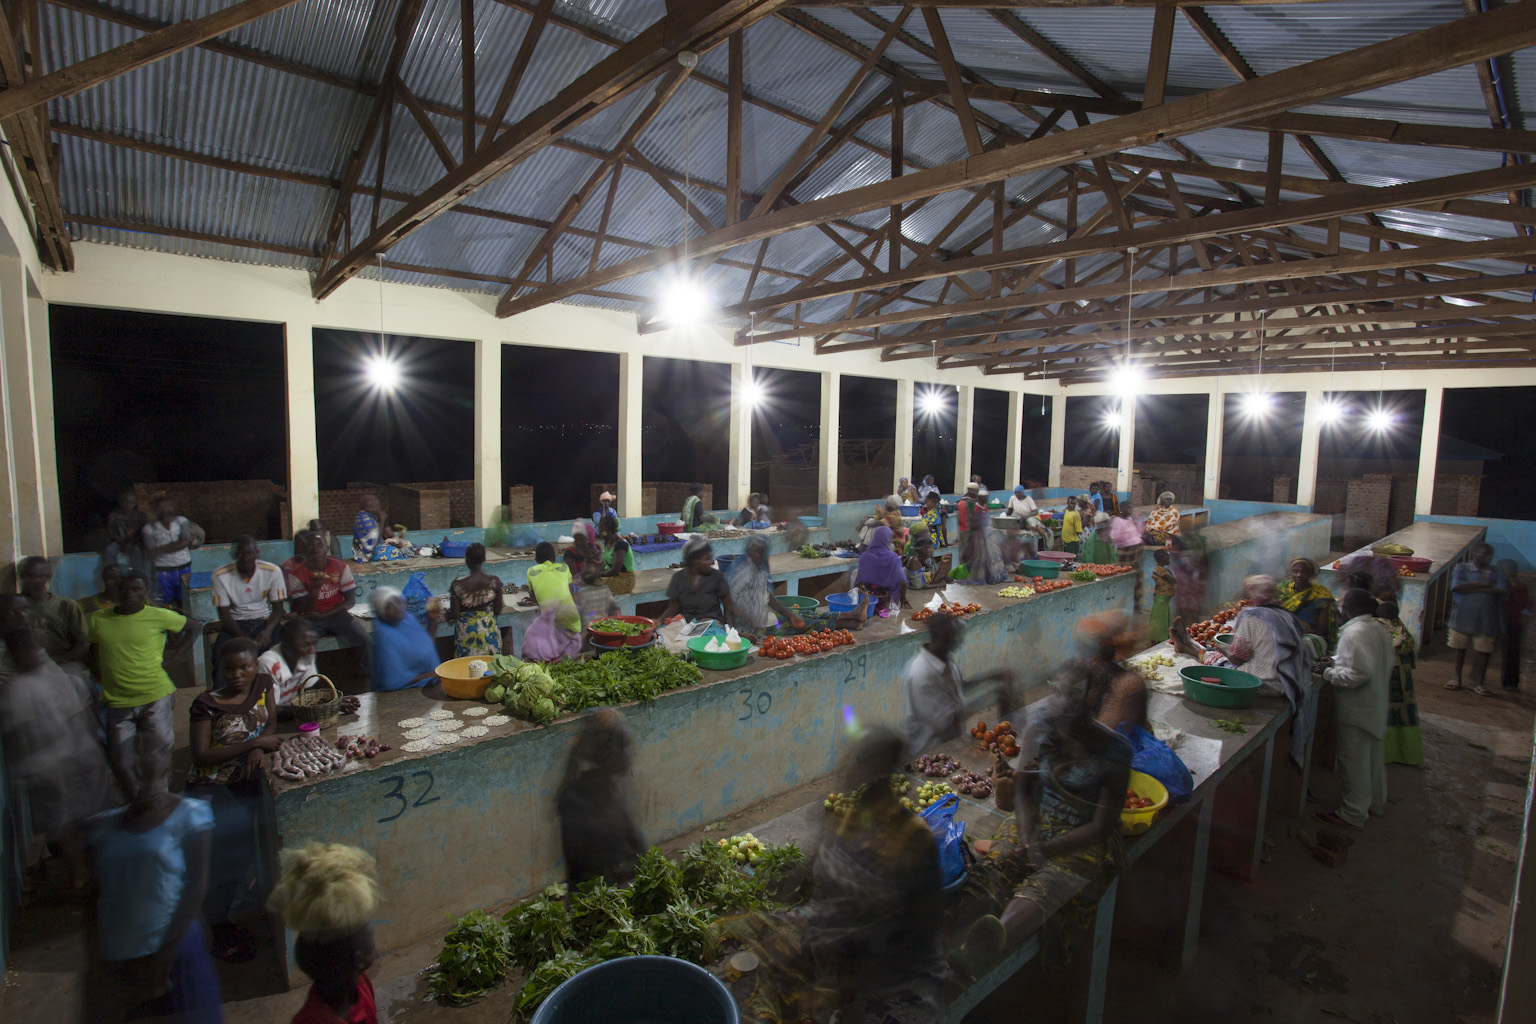 Use of electricity in fresh market